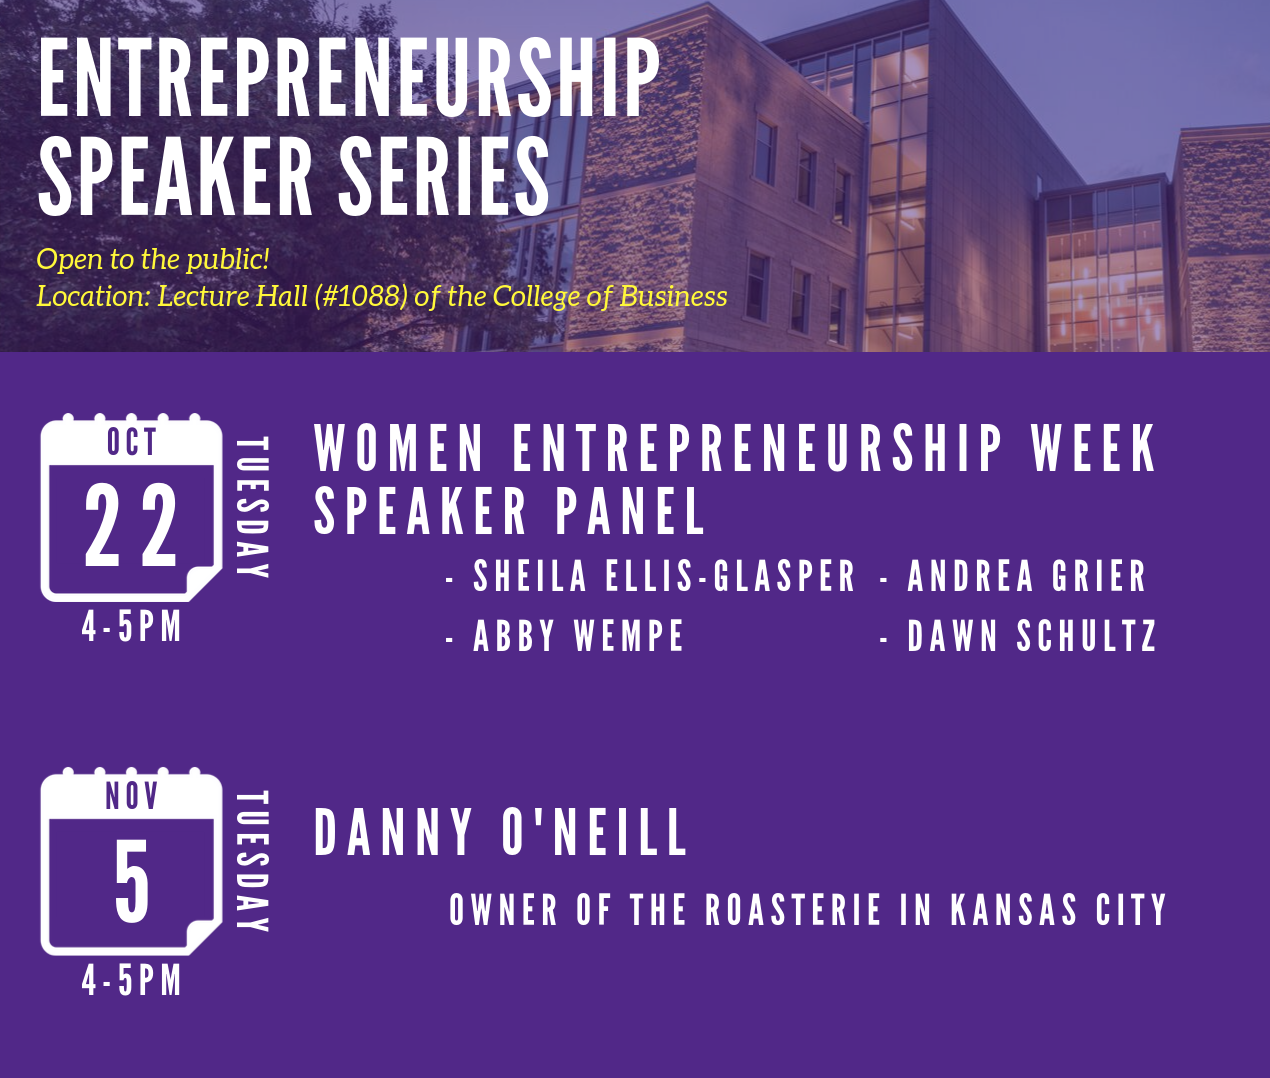 EntrepreneurshipSpeakerSeries_Oct-Nov